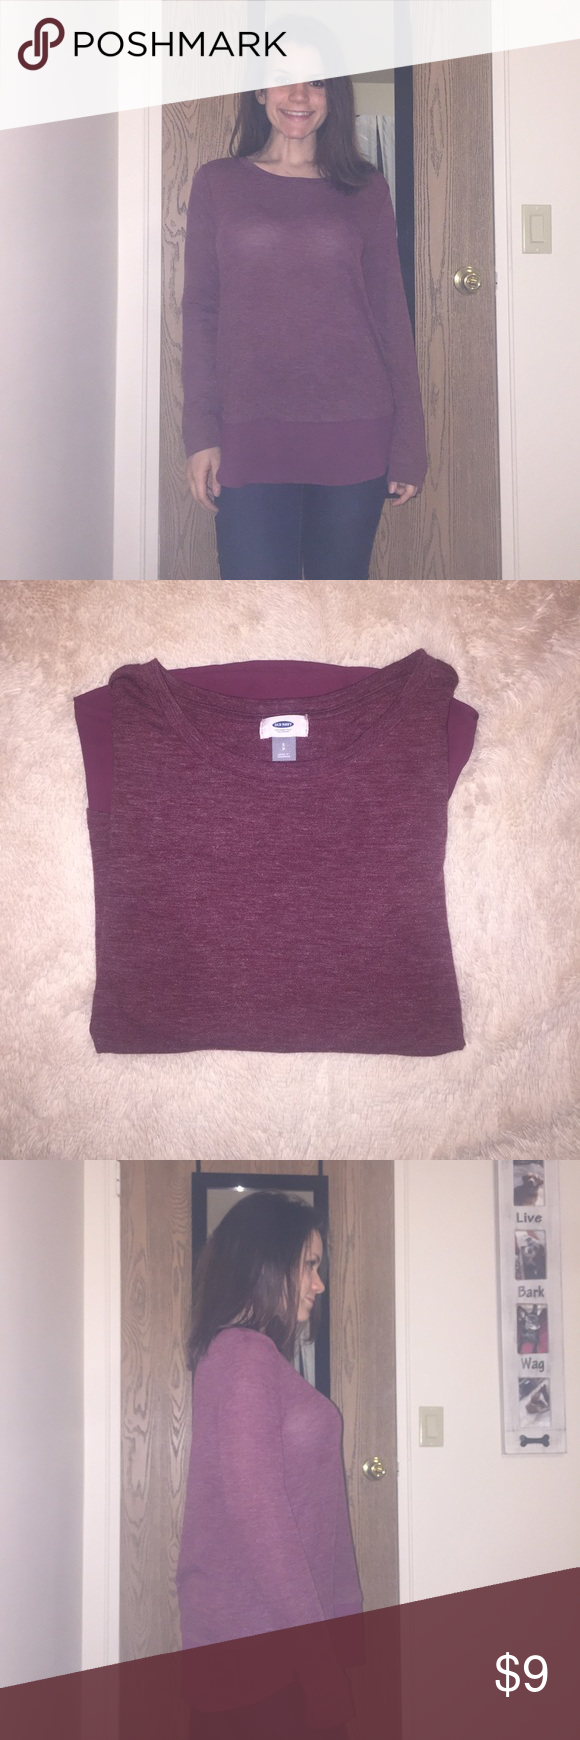 Old Navy | Long Sleeve Blouse Size: Small, Red/ 'Marin Berry'. SO soft! No wear or tear - only worn once. Old Navy Tops Tees - Long Sleeve